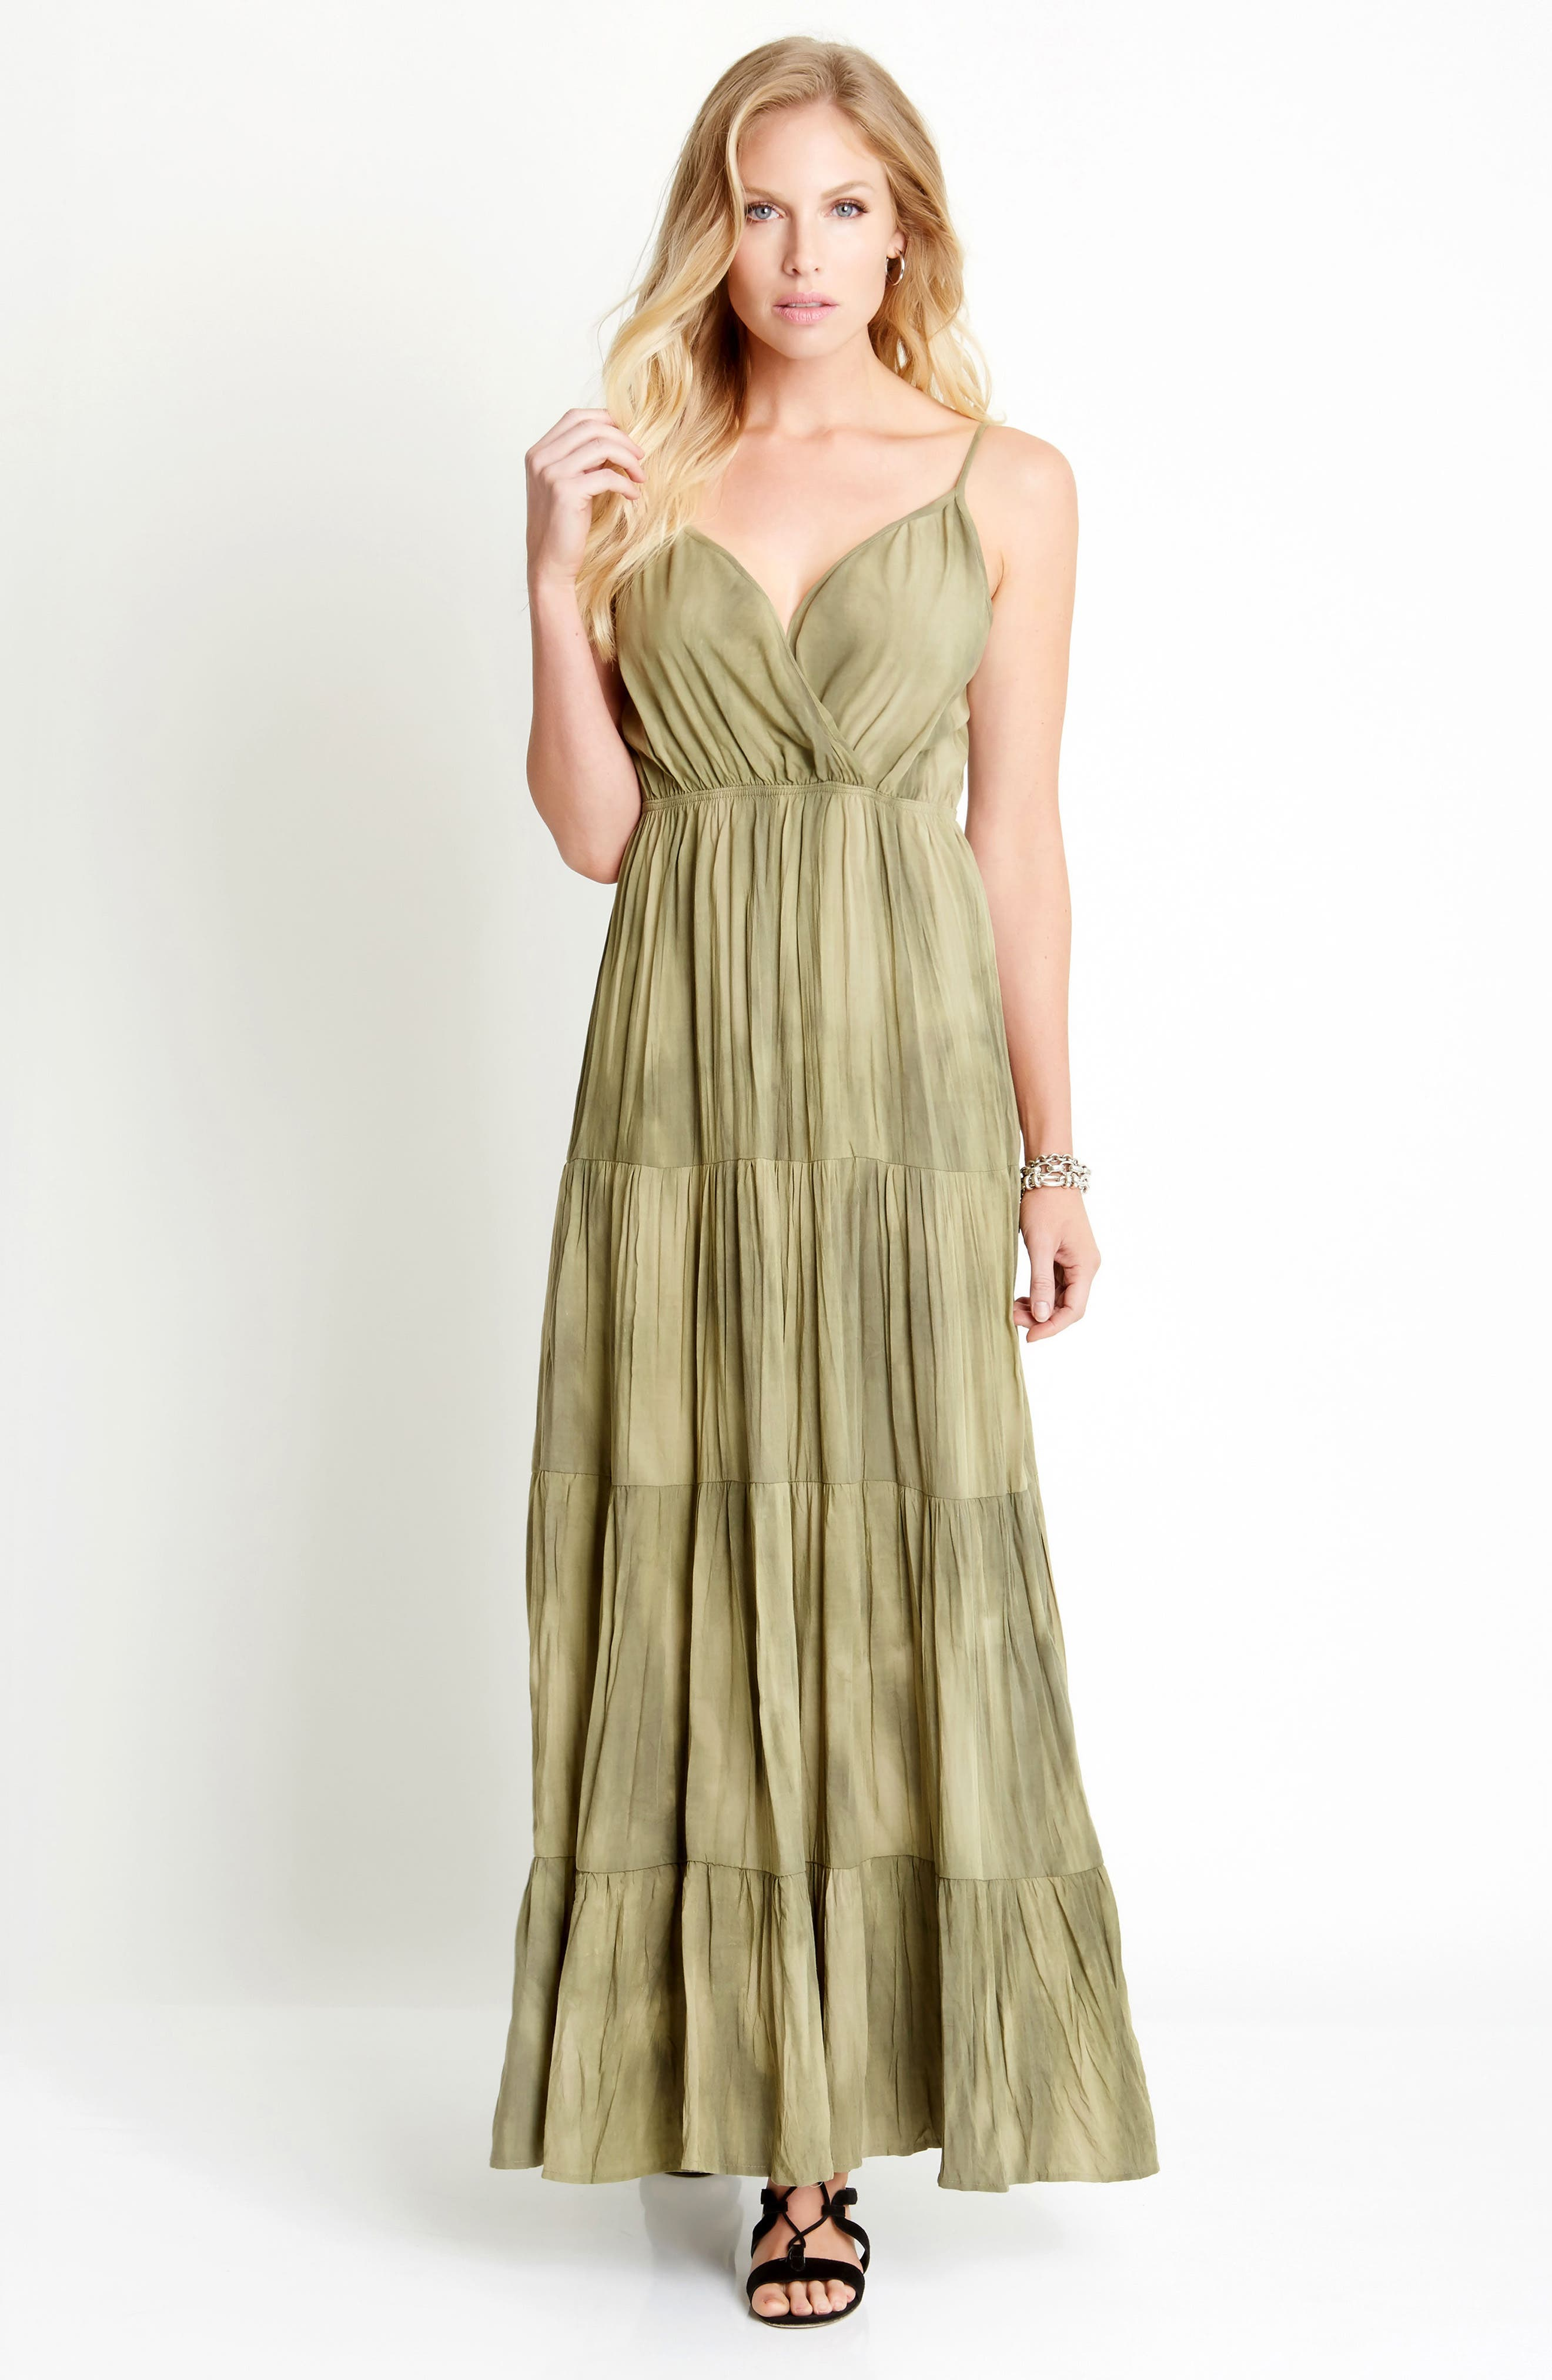 Tiered Maxi Dress,                             Alternate thumbnail 3, color,                             337